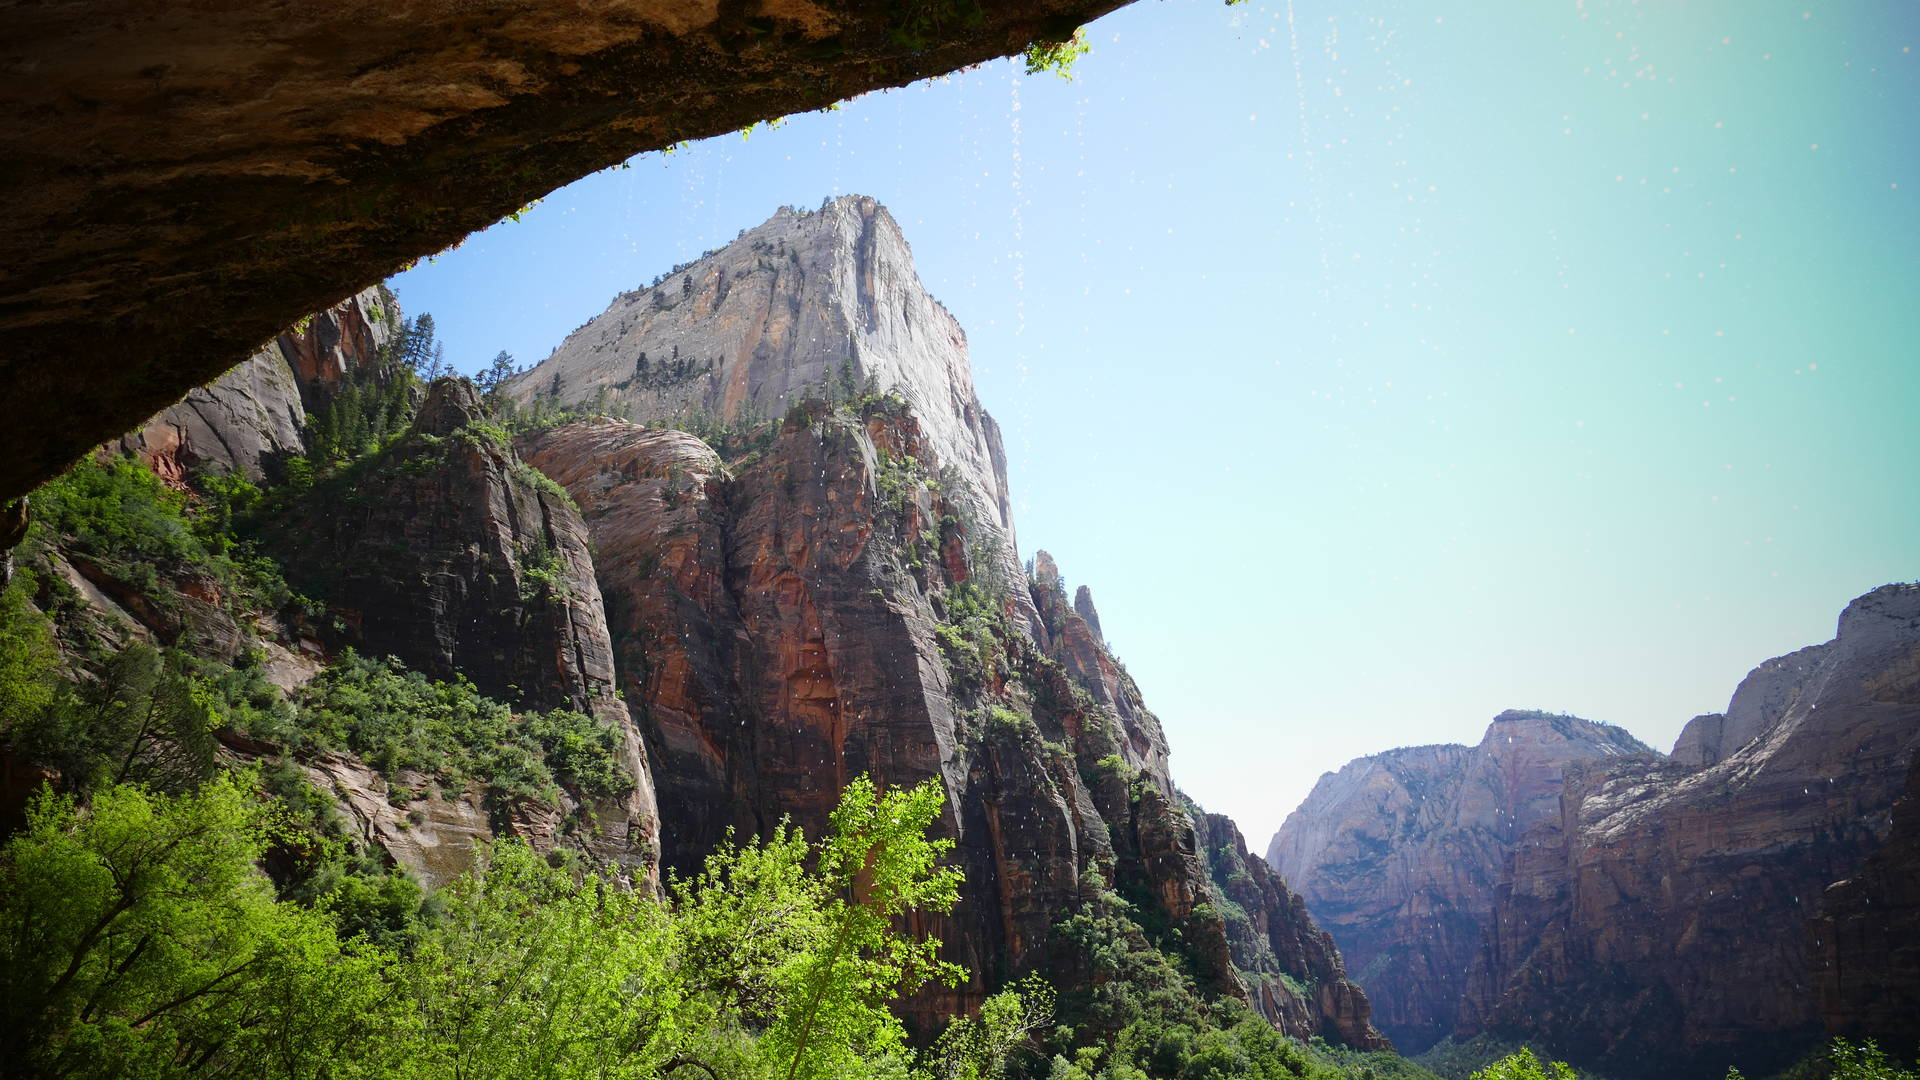 Wheeping Rock, Zion National Park